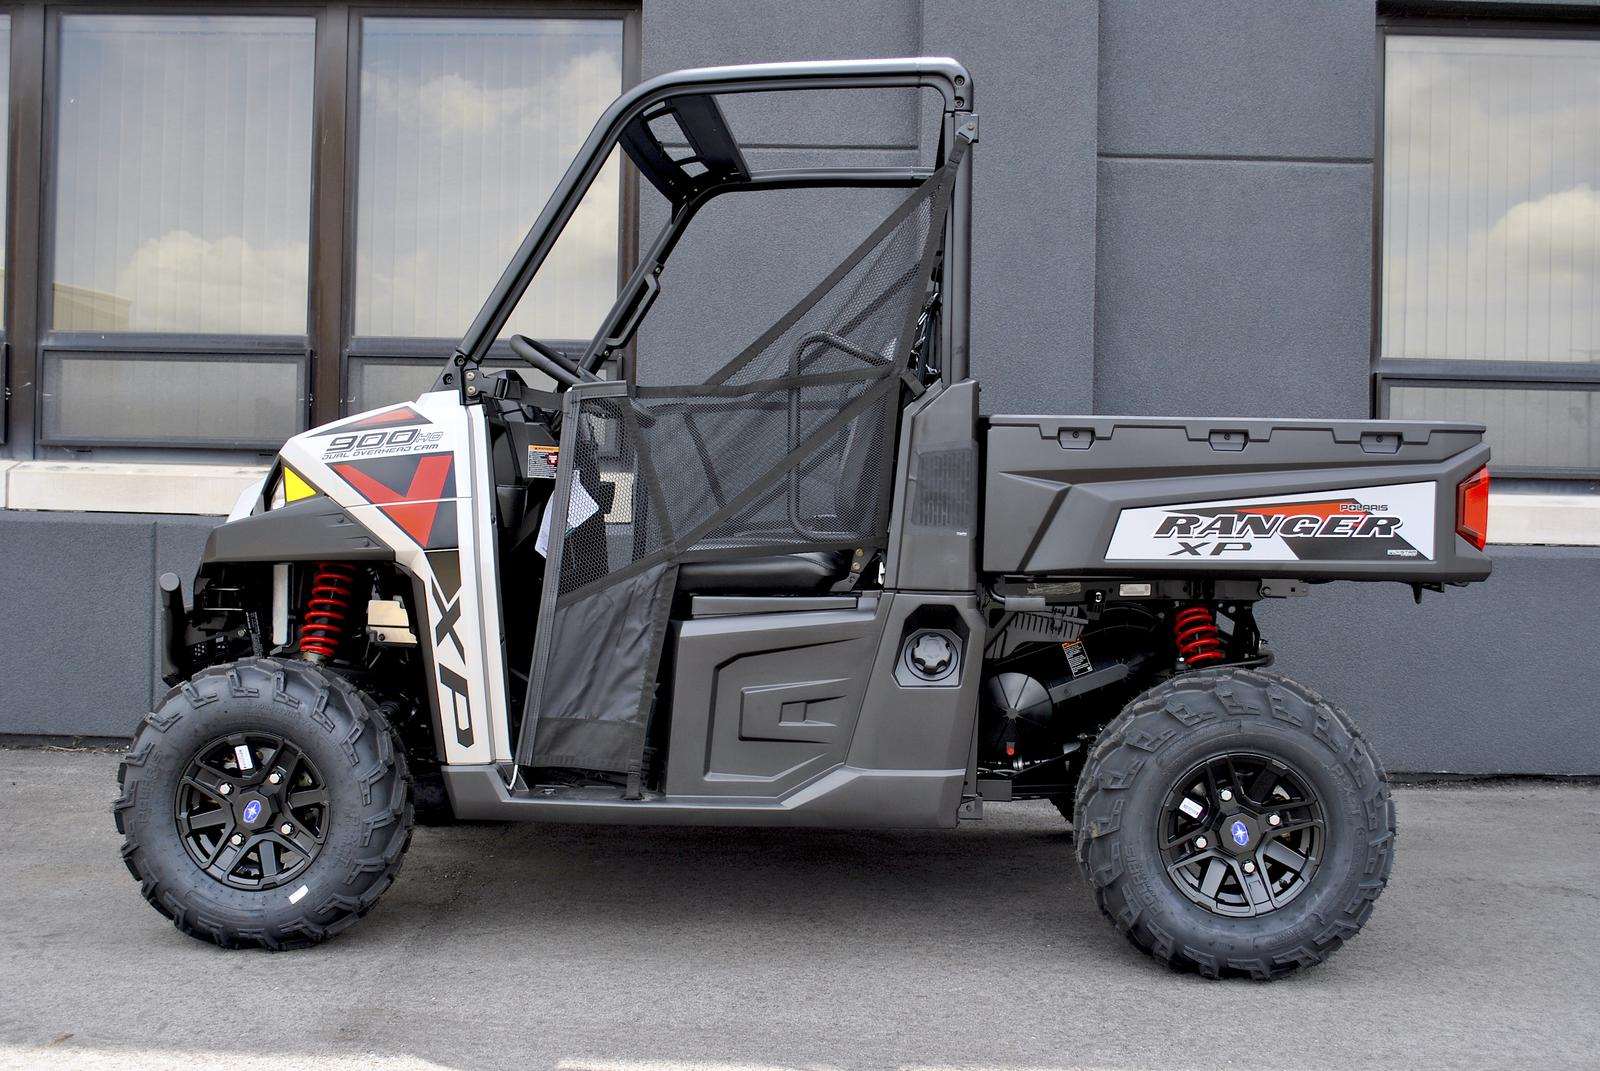 2019 Polaris Industries Ranger Xp 900 Eps R19rte87ah For Sale In Accessory Fuse Box Turbosilver P7743 04